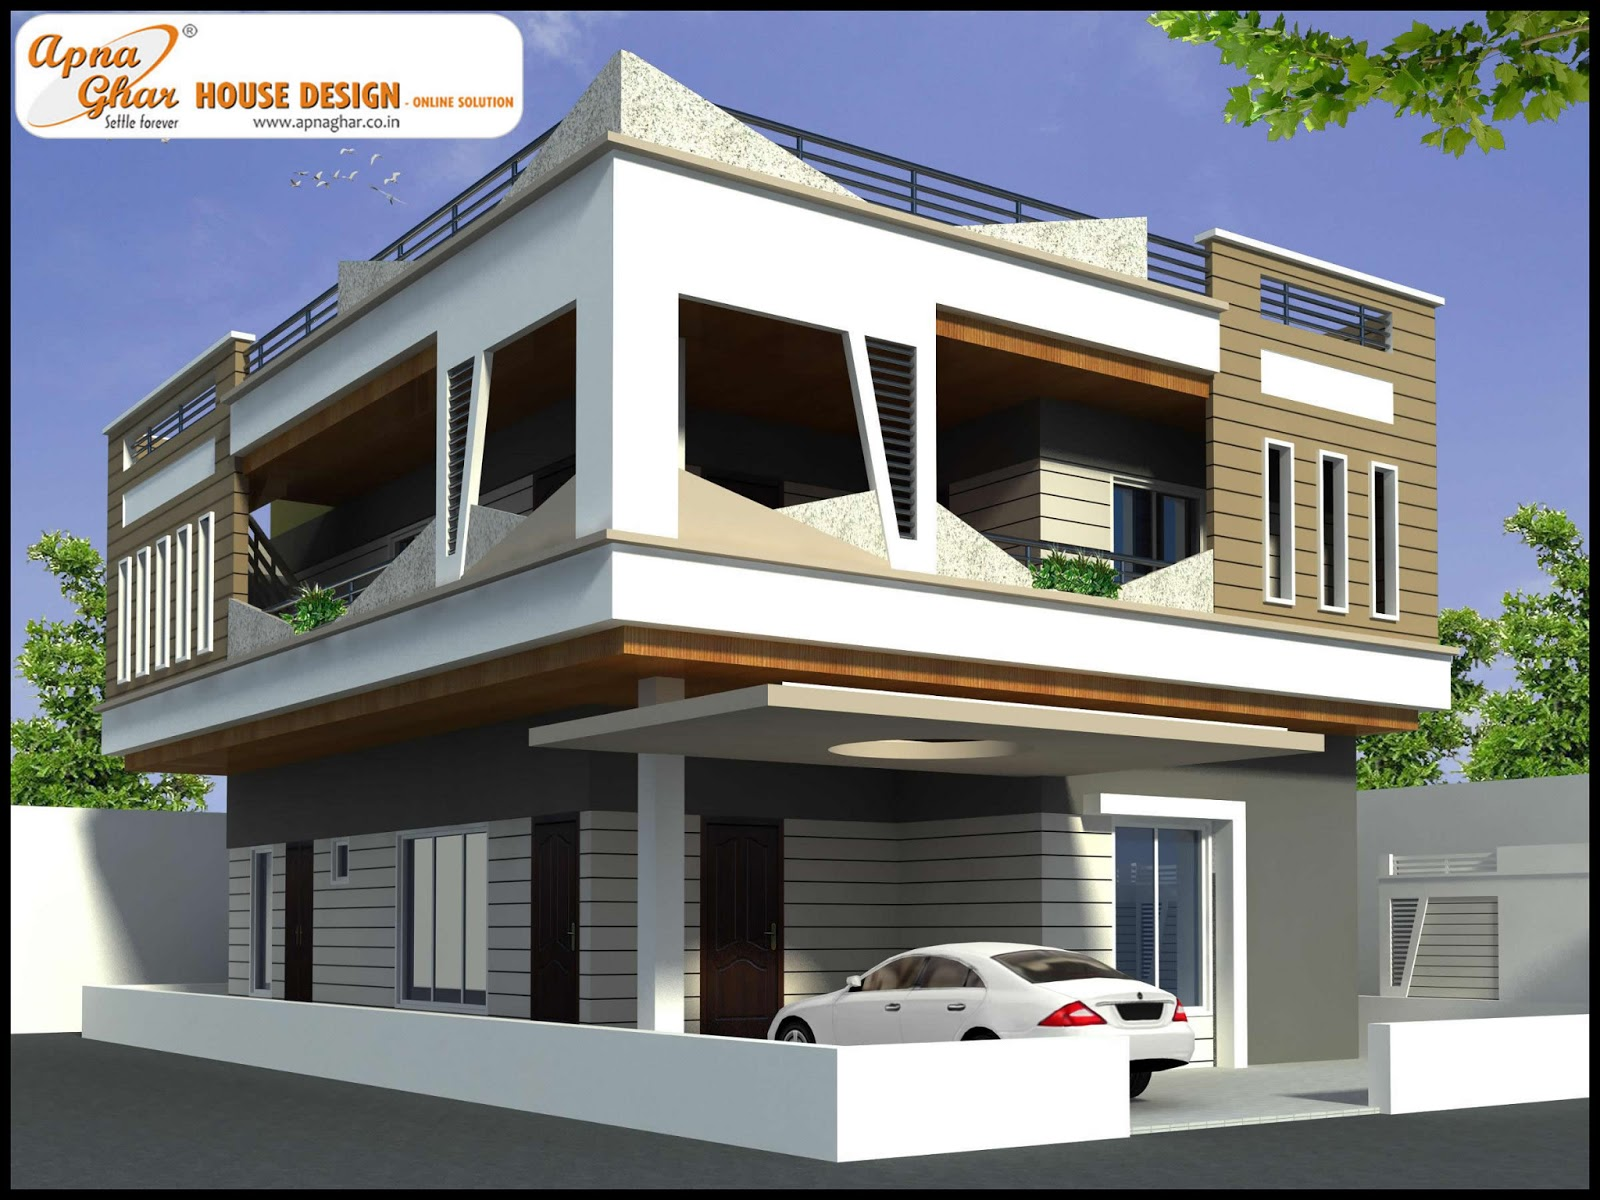 4 bedrooms duplex house design in 216m2 12m x 18m for Home designs 4 you